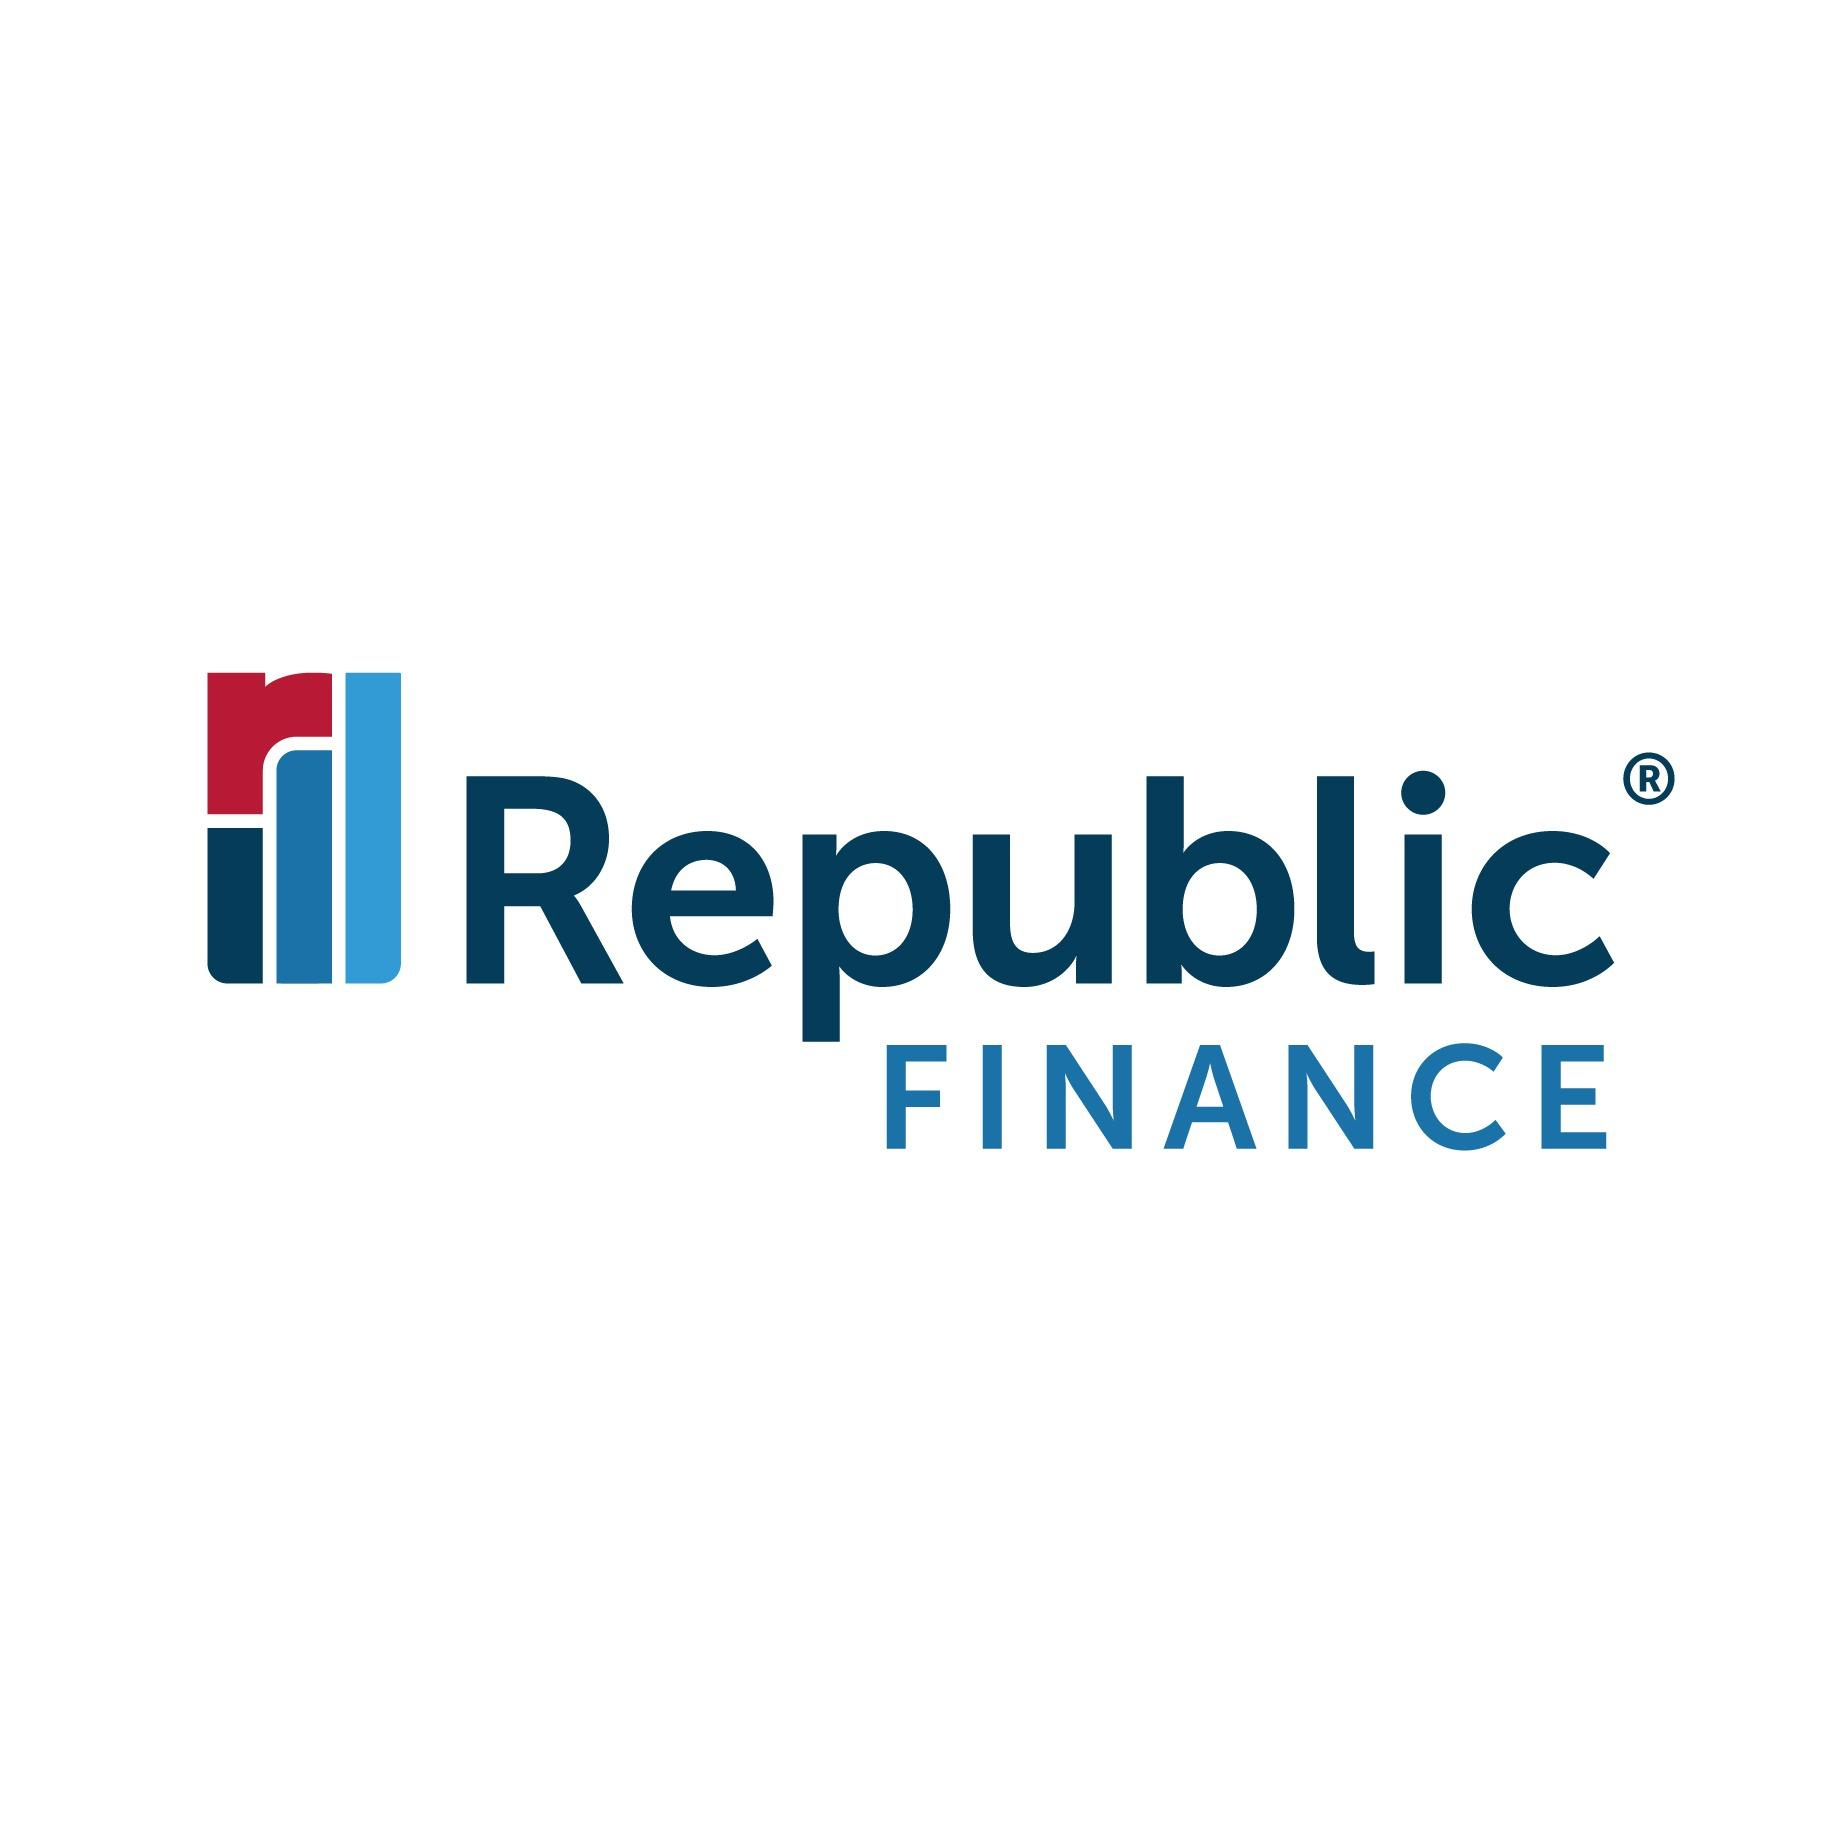 Republic Finance - Statesboro, GA 30458 - (912)489-0525 | ShowMeLocal.com